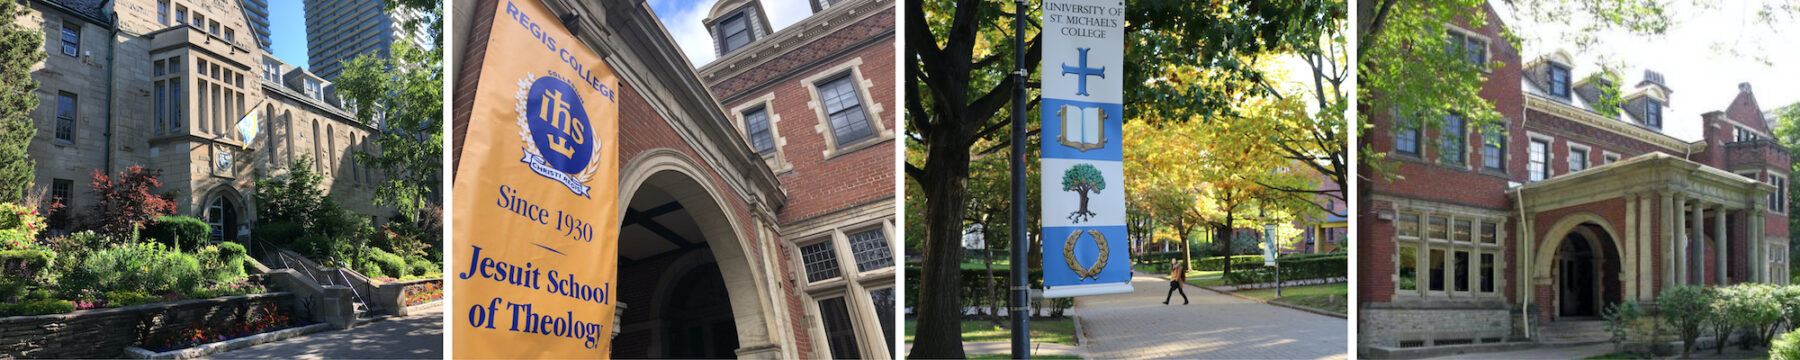 Four images show different parts of the Regis and St. Michael's campuses